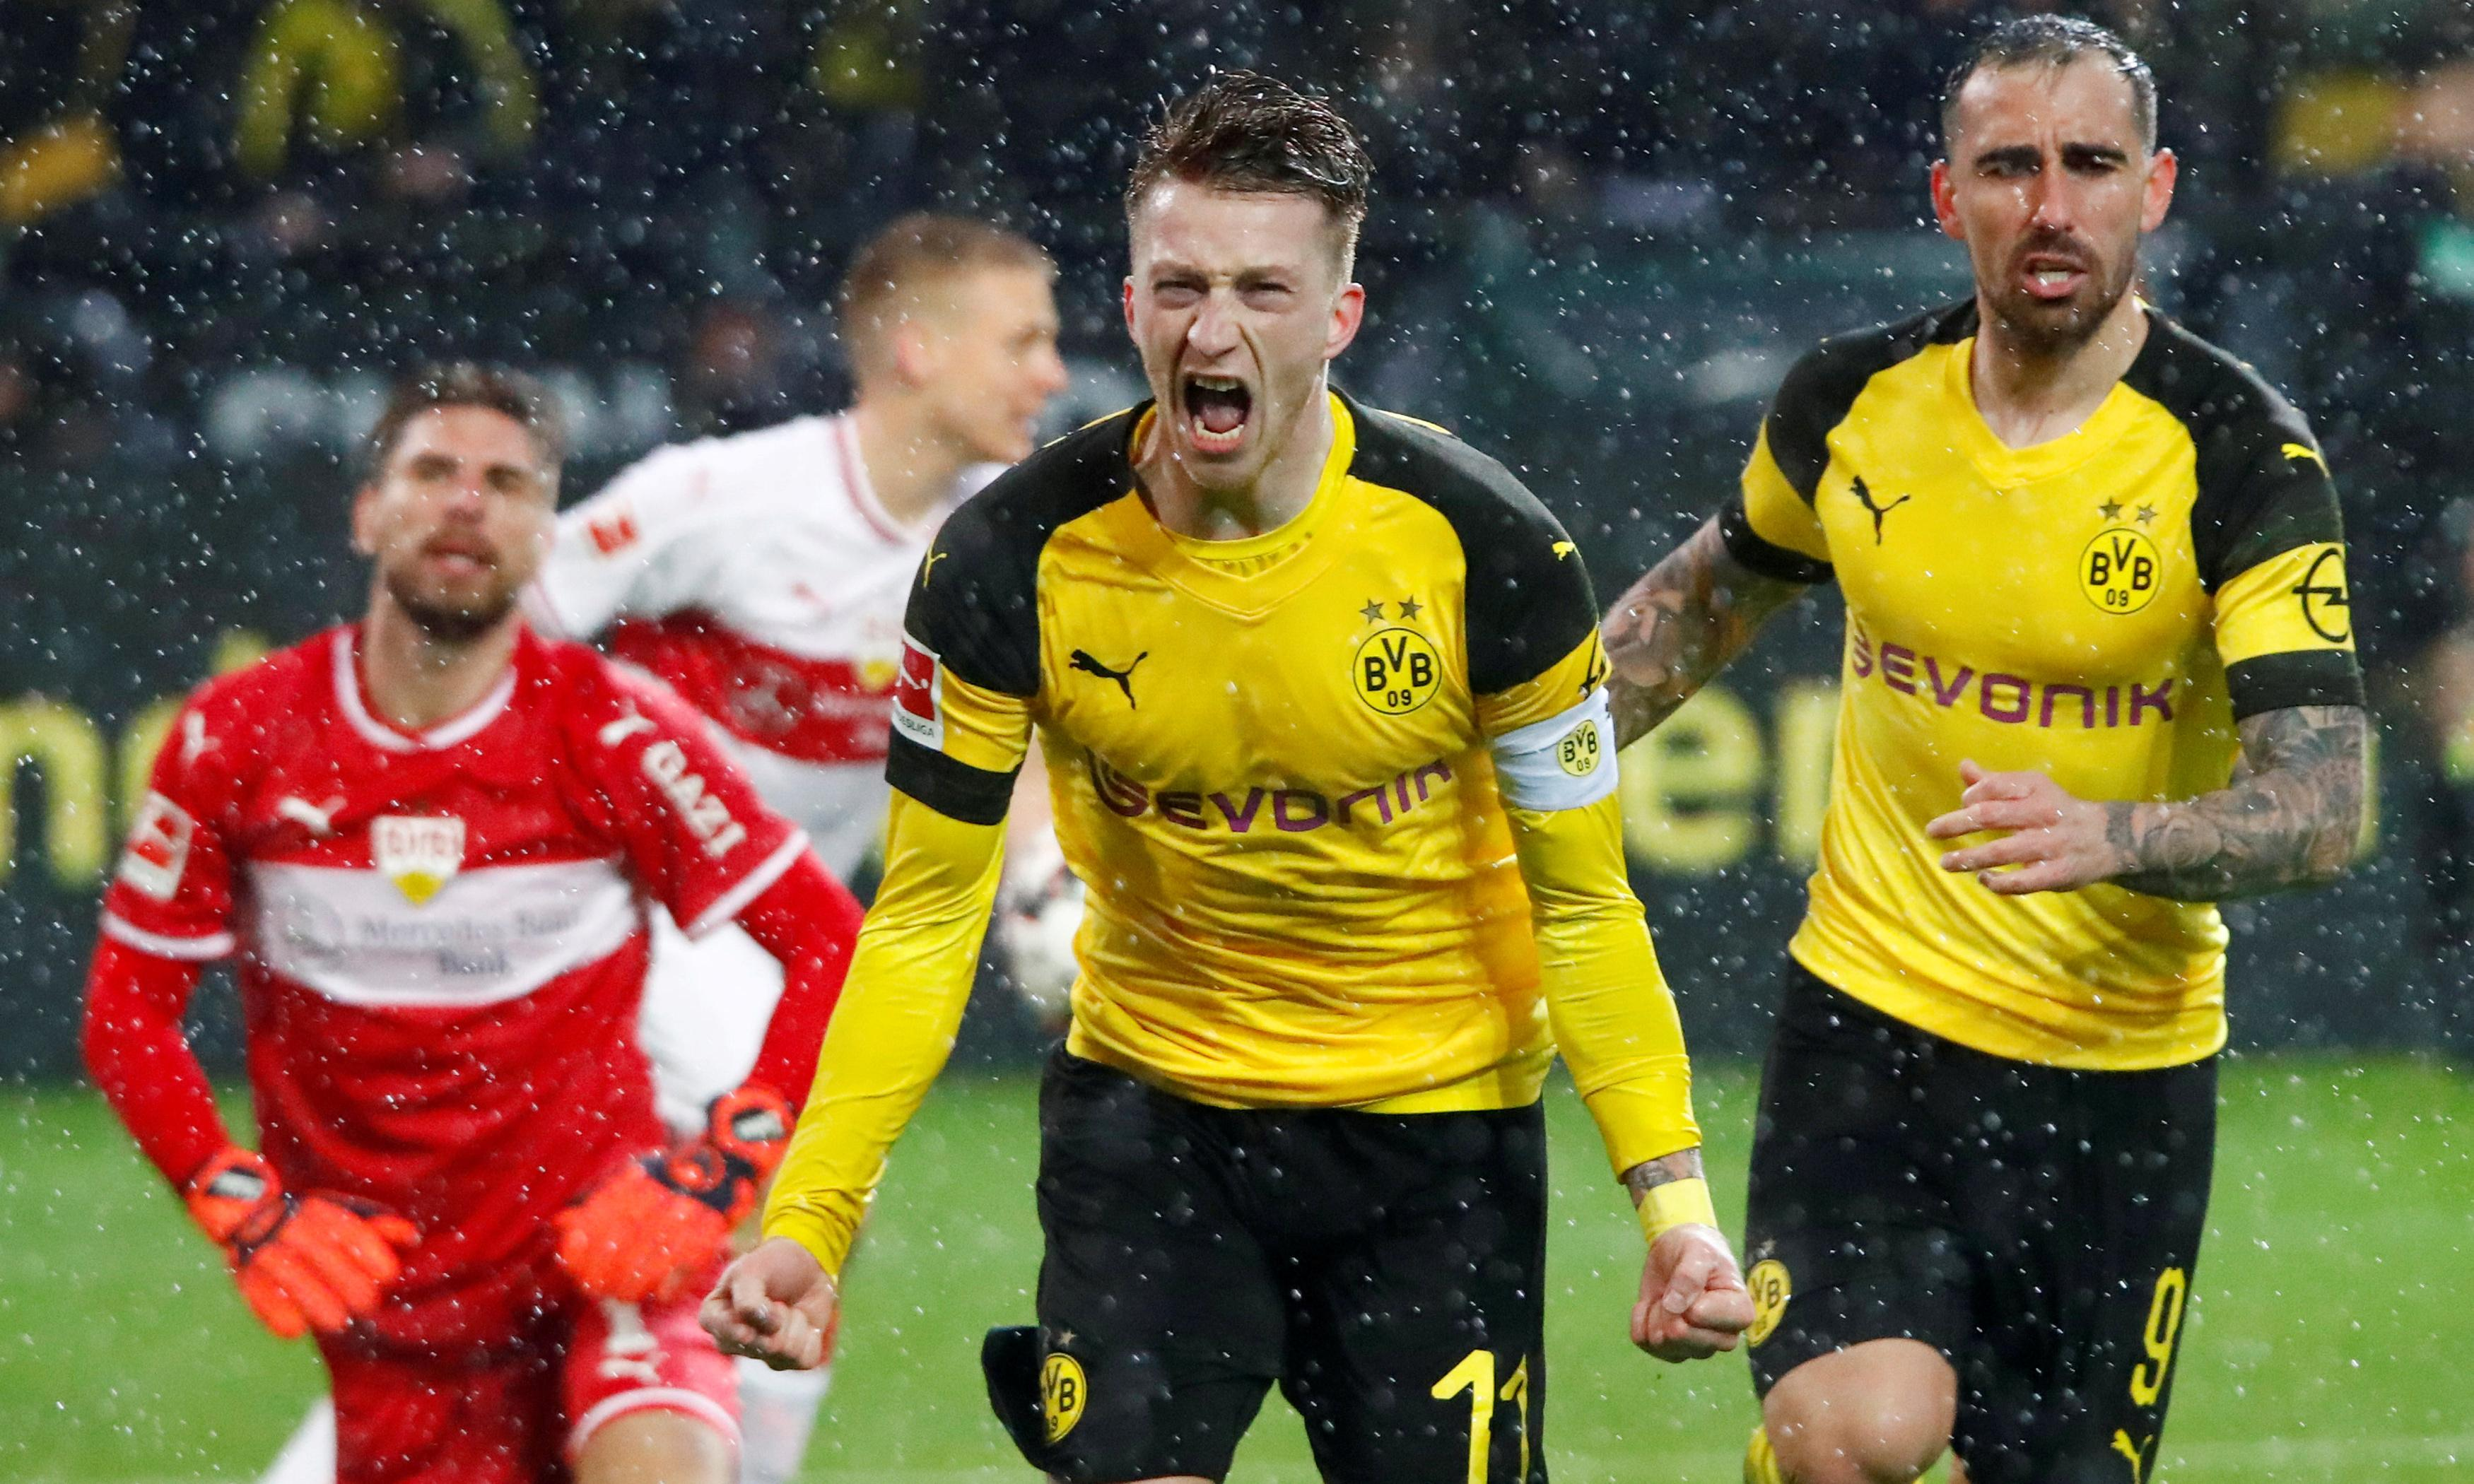 European roundup: Marco Reus sends Dortmund top with nailbiting late show